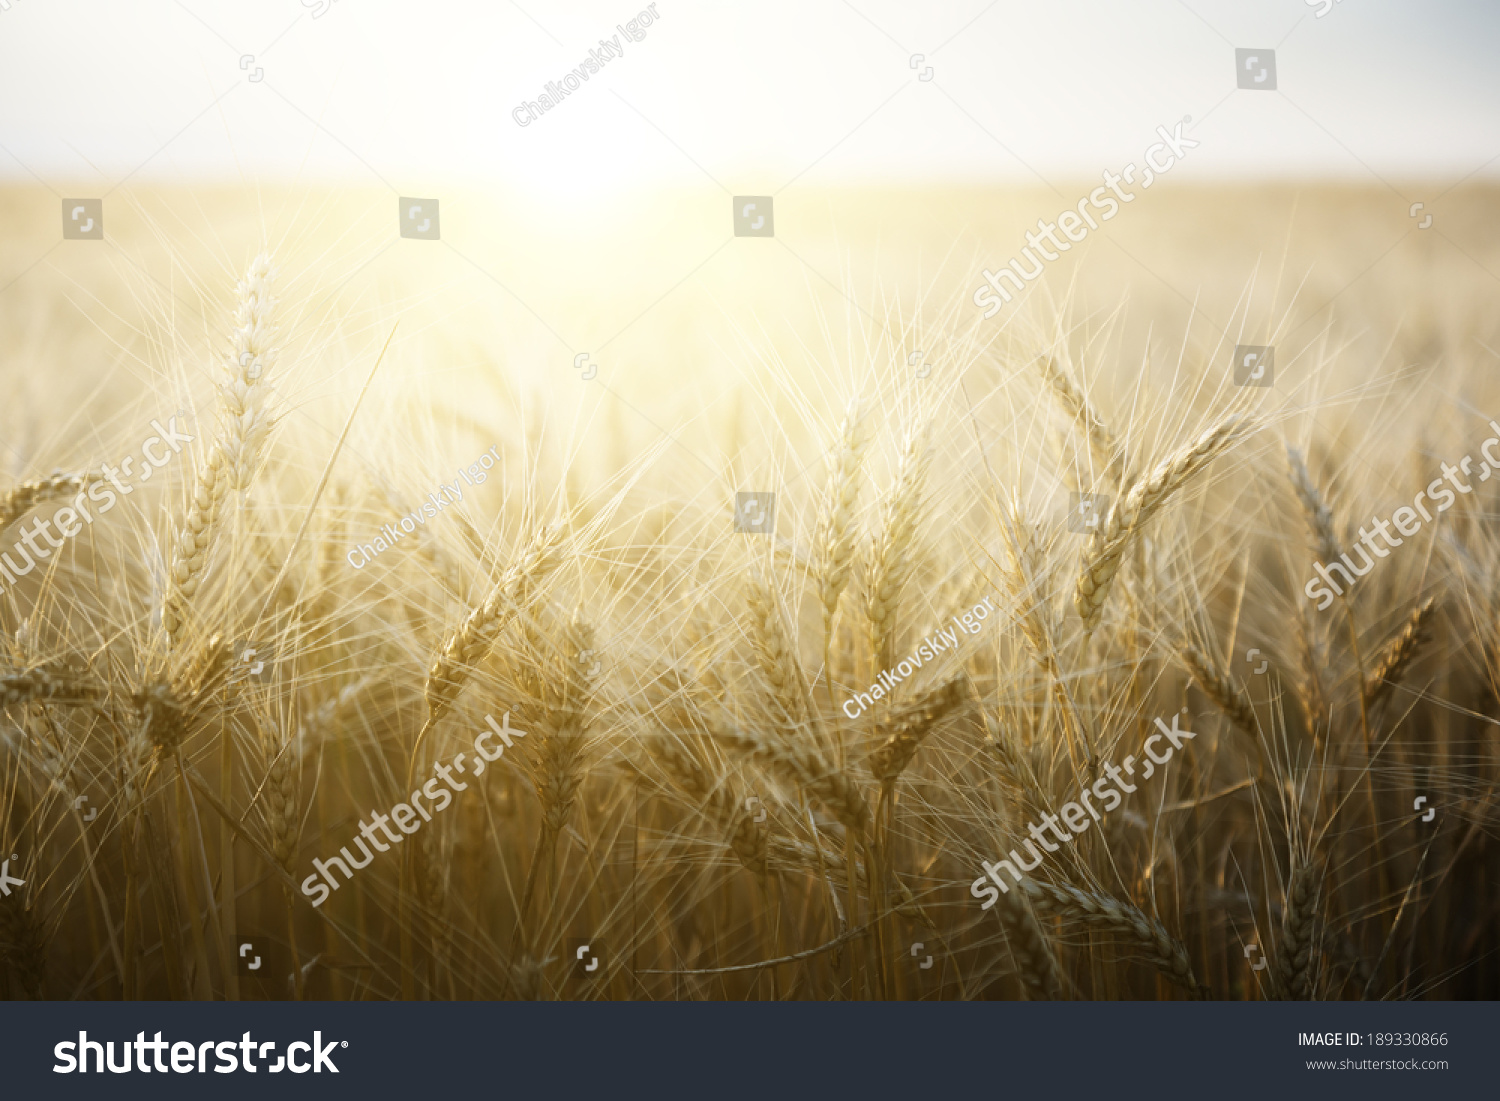 Wheat field on a Sunny day. Agriculture. #189330866